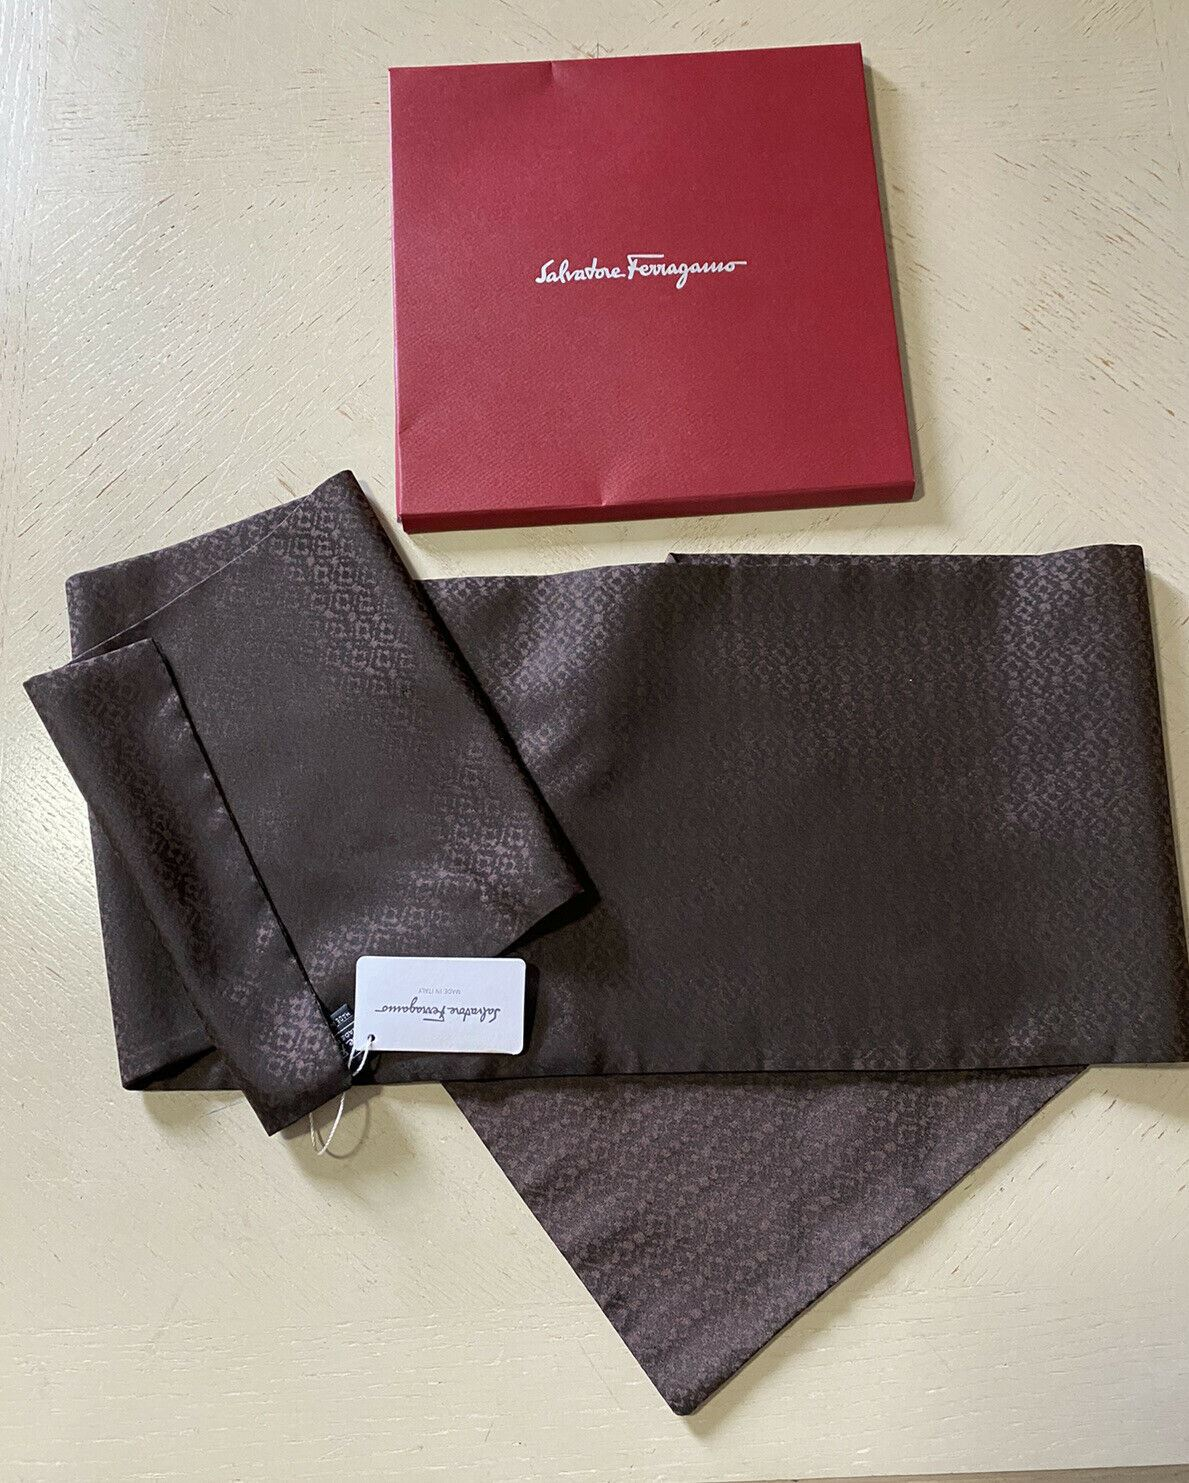 NWT Salvatore Ferragamo Men's Silk Scarf Brown/Black Made In Italy